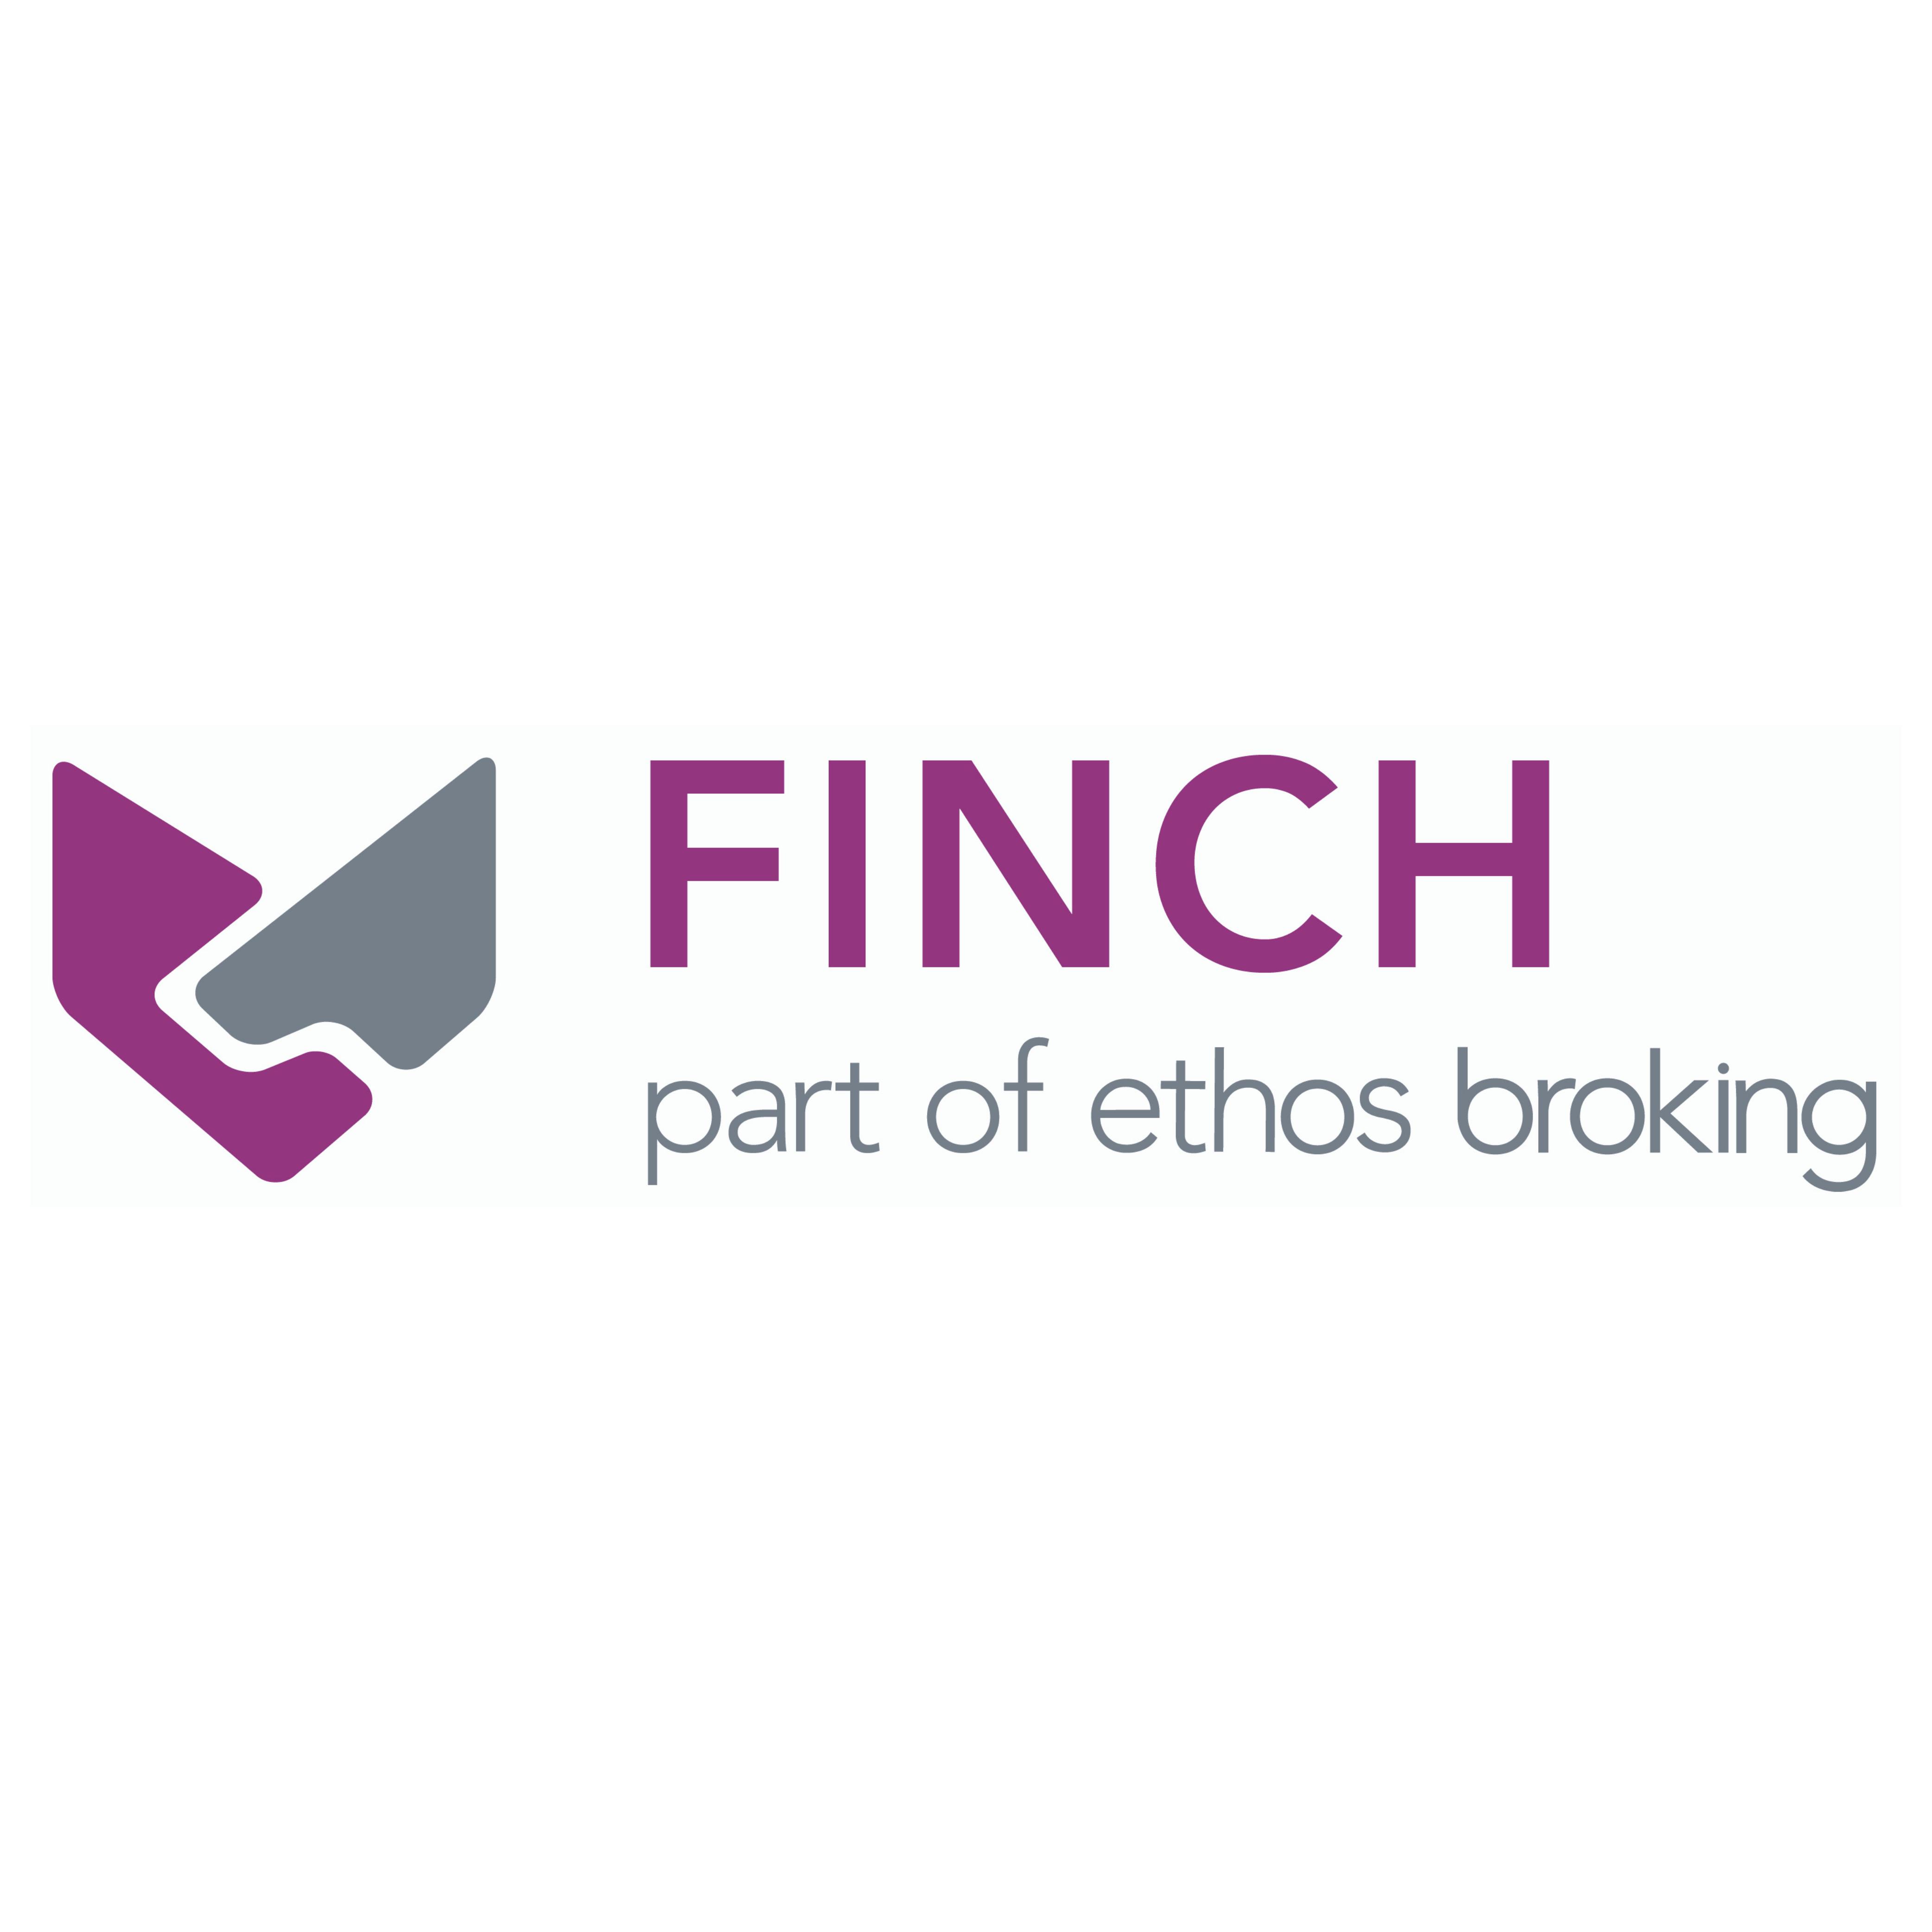 Finch Commercial Insurance Brokers Ltd